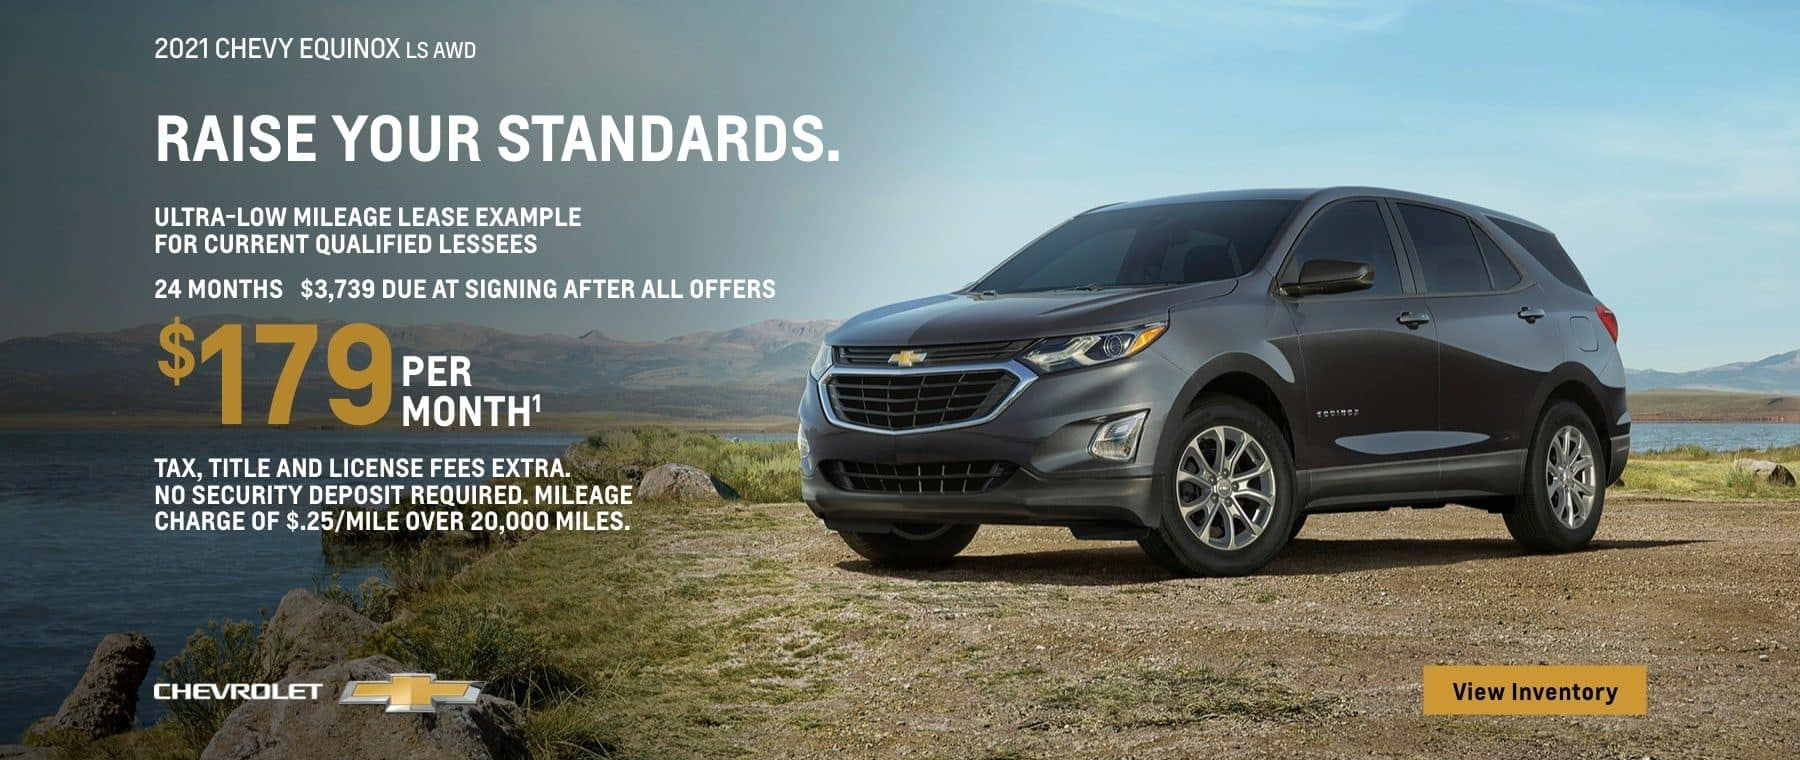 2021 Chevy Equinox LS AWD. Raise your standards. Ultra-low mileage lease example for current qualified lessees. $179 per month. 24 months. $3,739 due at signing after all offers. Take, title and license fees extra. No security deposit required. Mileage charge of $.25/mile over 20,000.